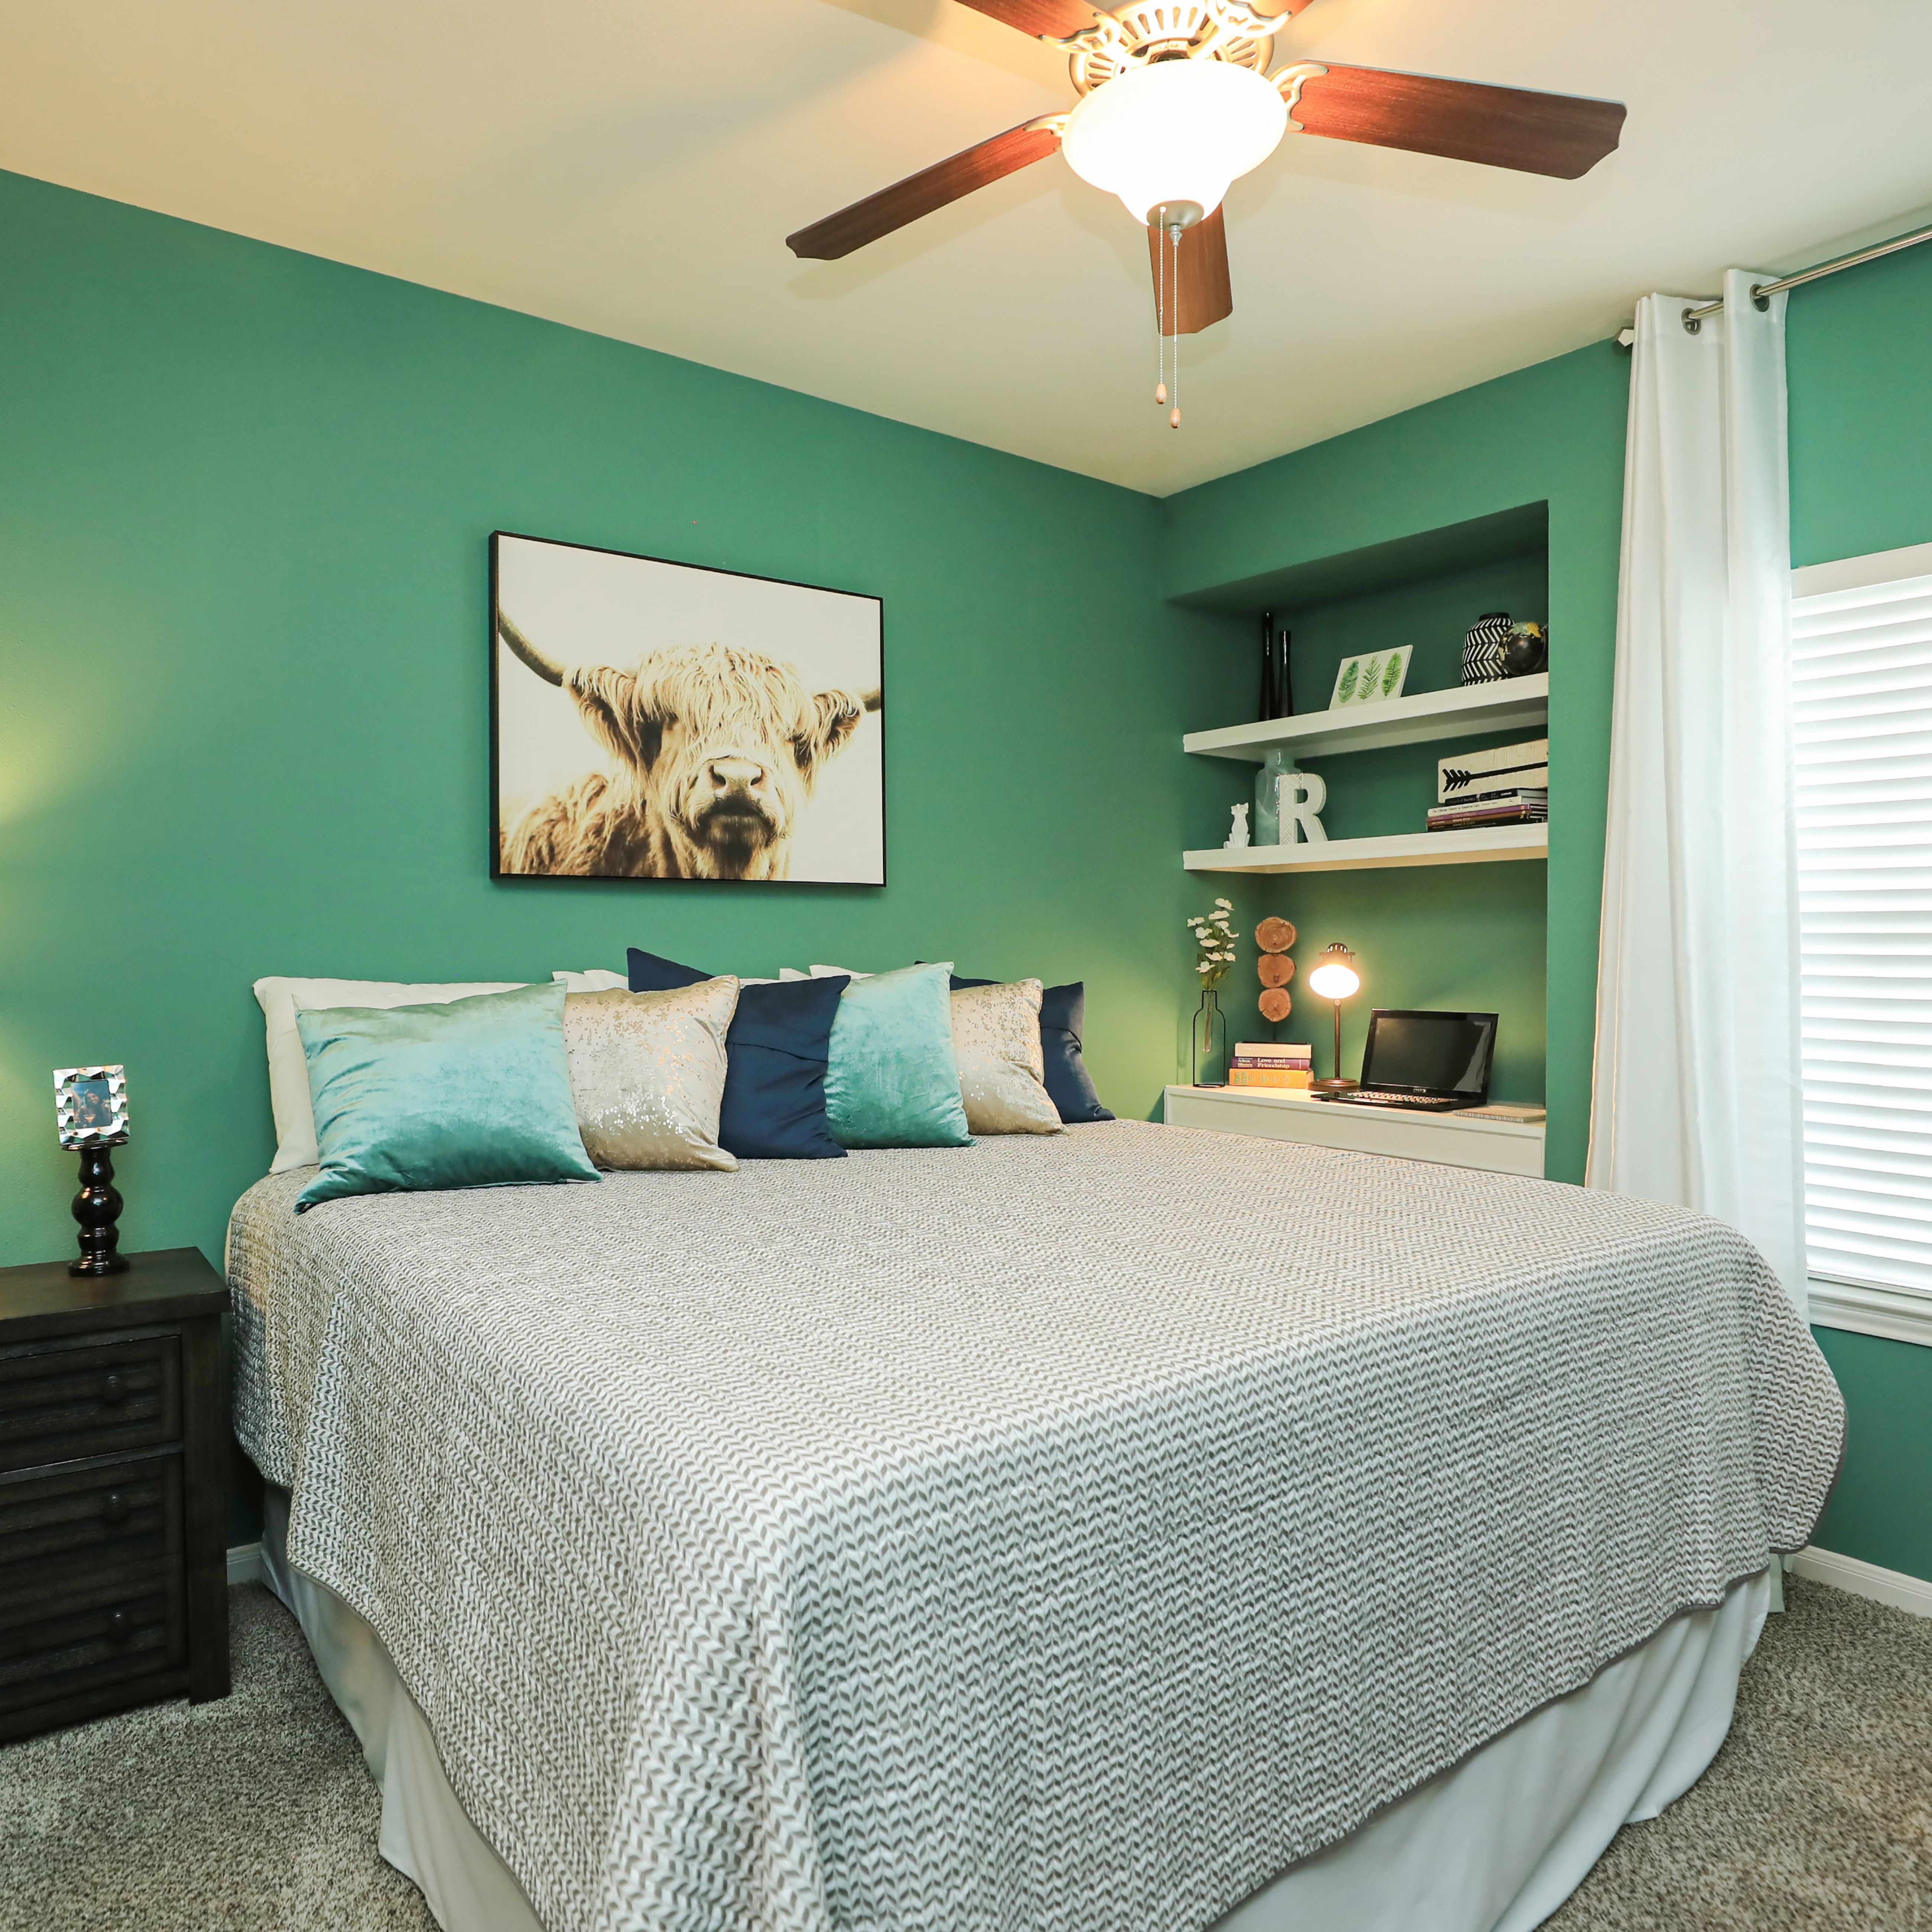 With five different 1, 2 and 3 bedroom styles, we're